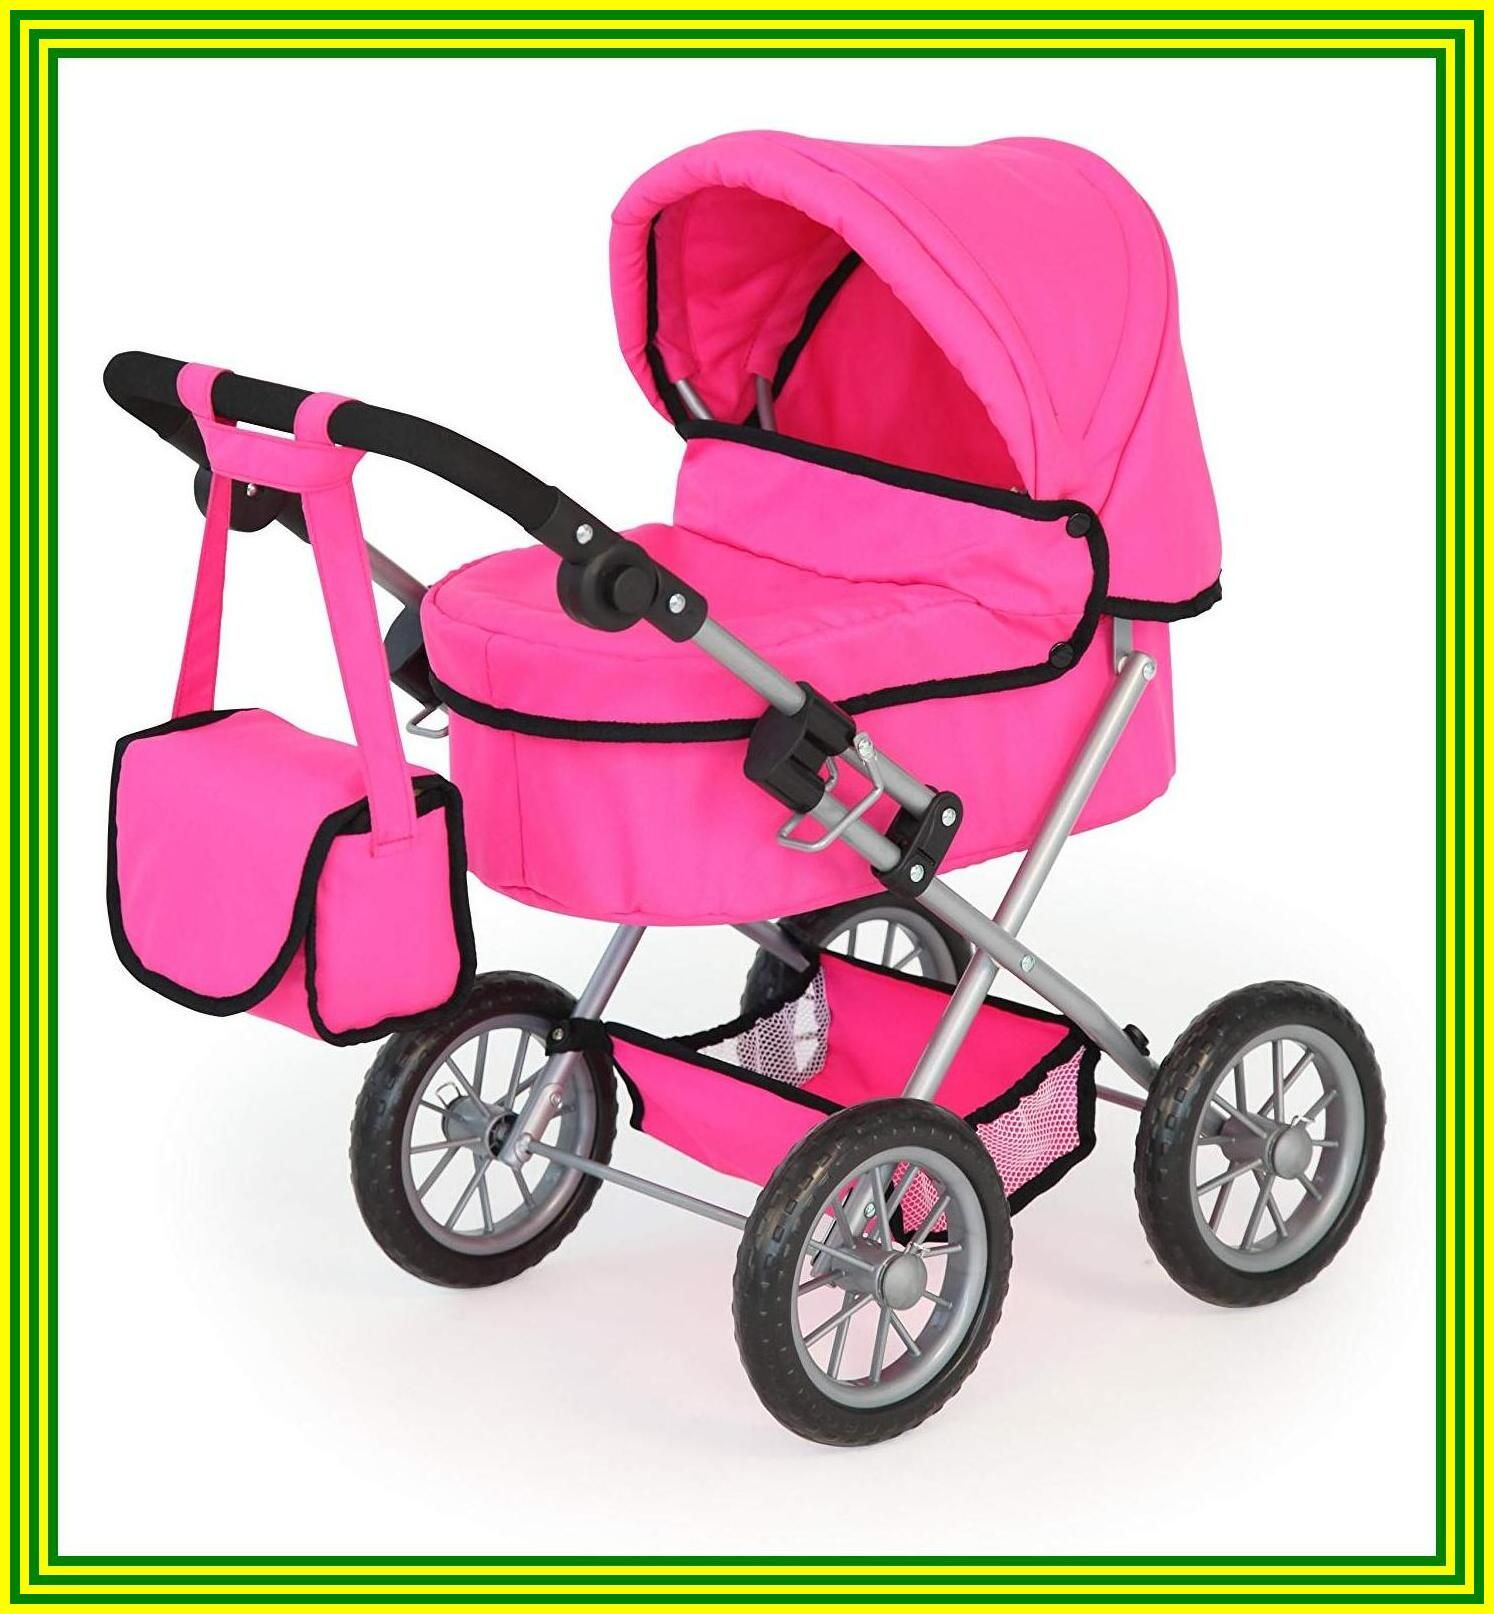 92 reference of baby stroller toy amazon in 2020 Baby